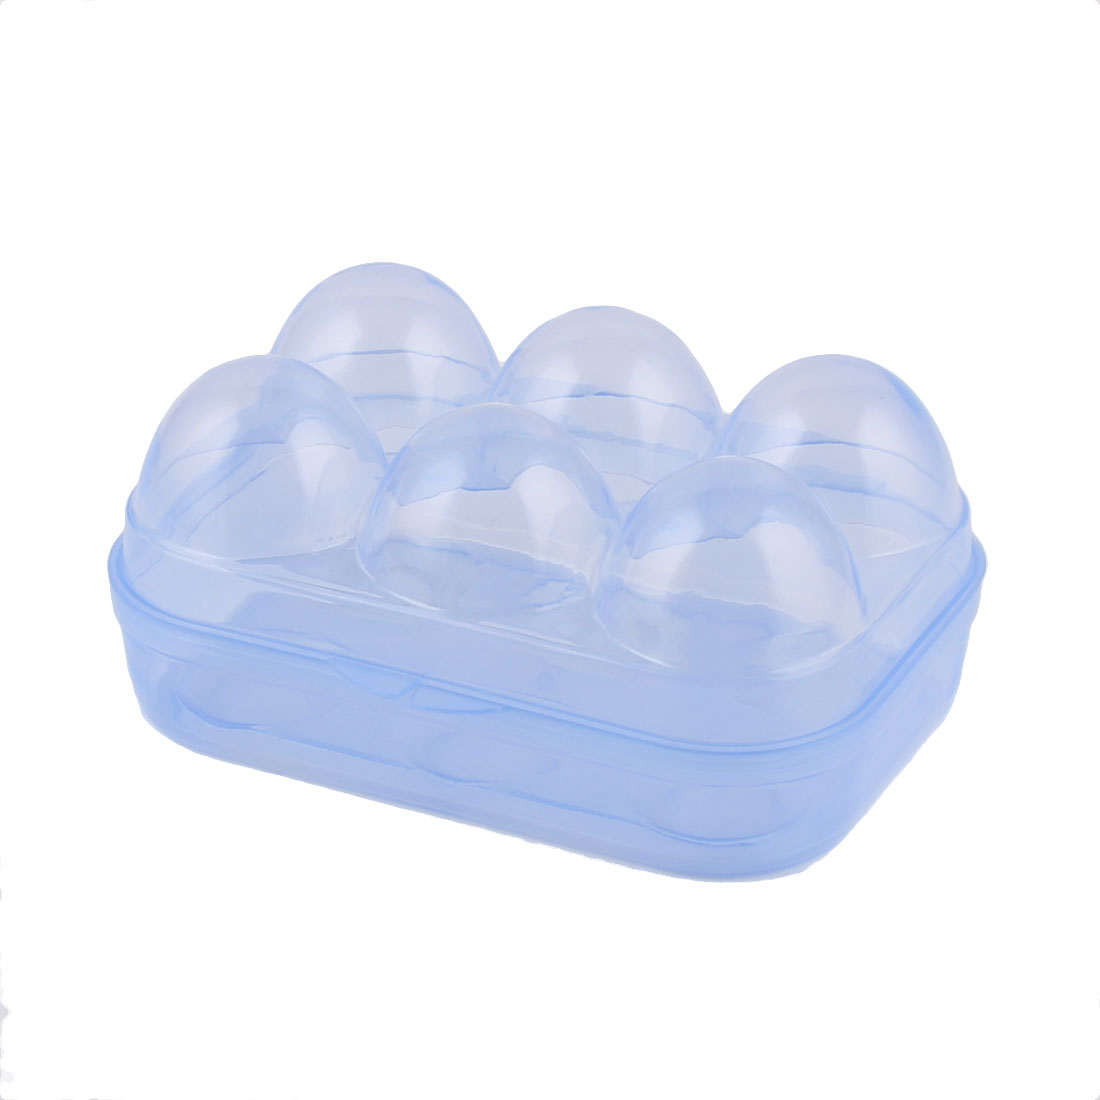 Household Outdoor Travel Plastic Egg Holder Container Case Storage Clear Purple